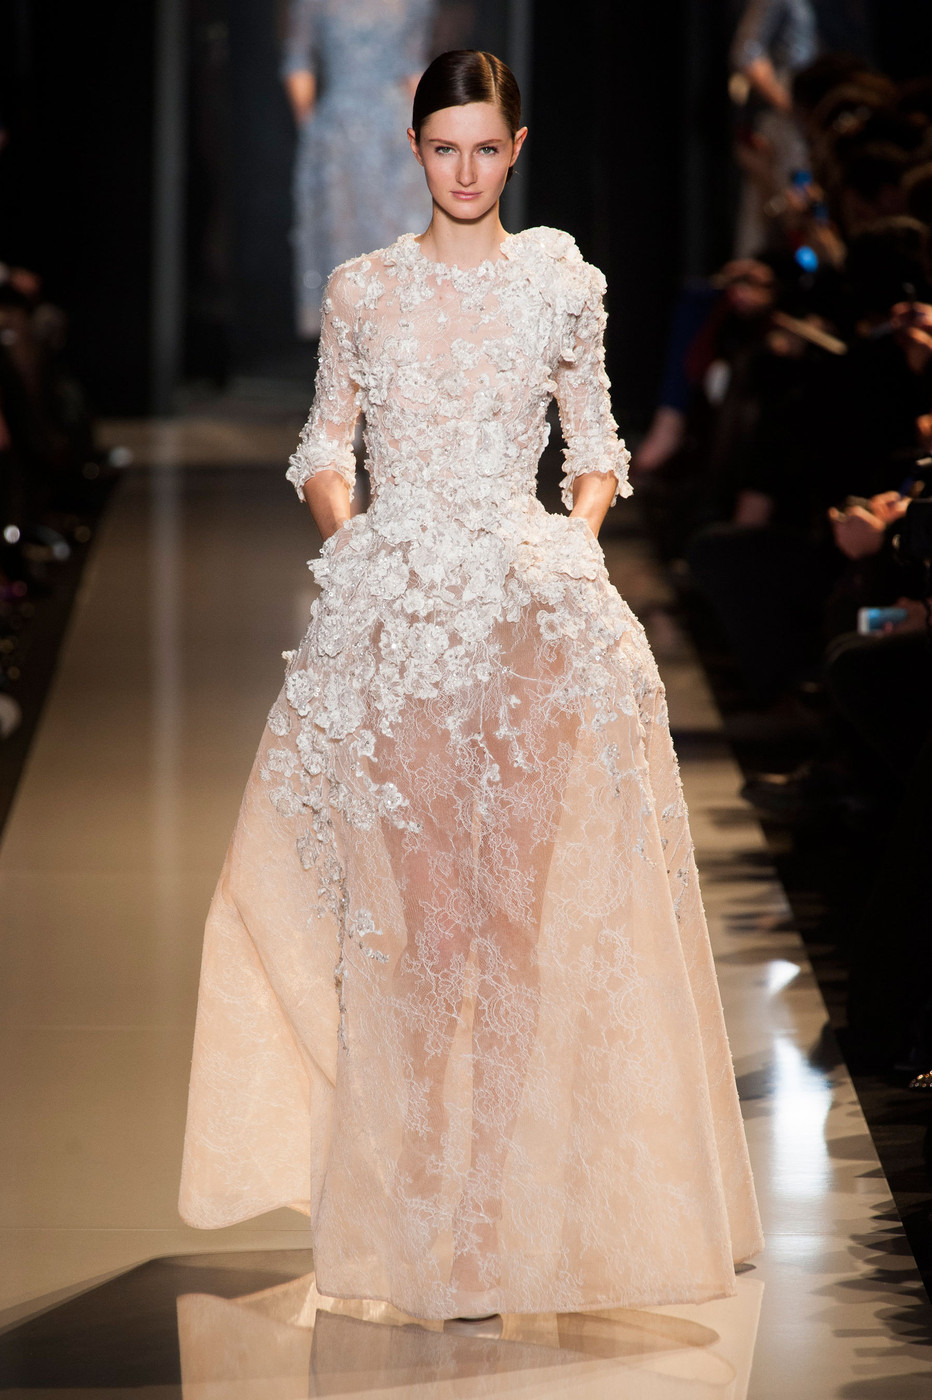 Elie saab haute couture spring 2013 spring 2013 39 s for Haute couture list